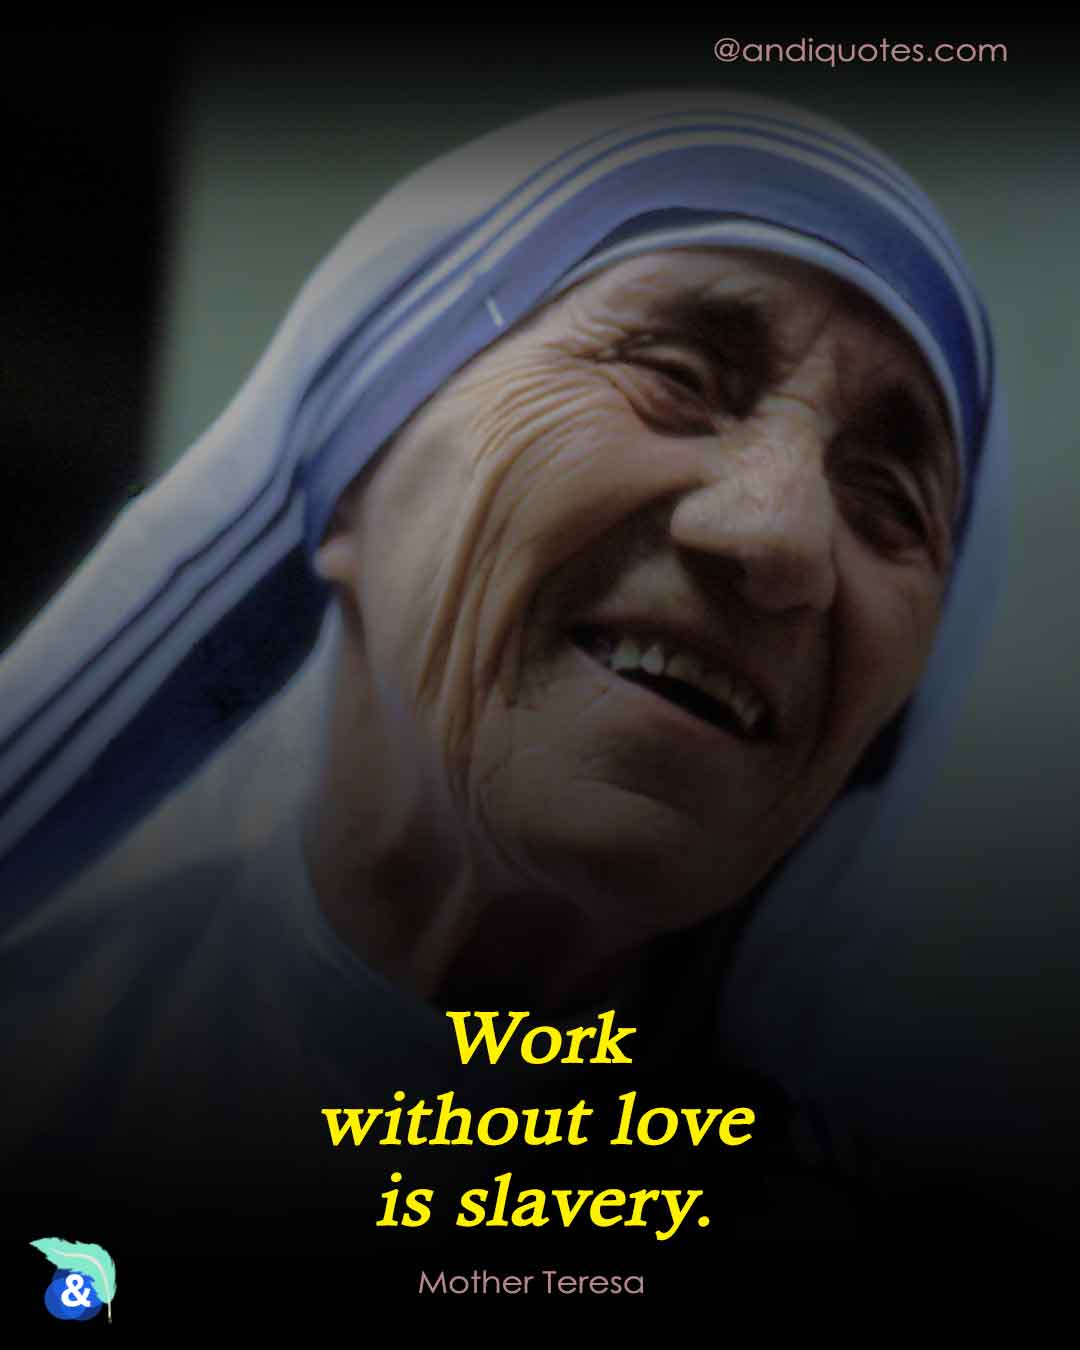 Work without love is slavery.